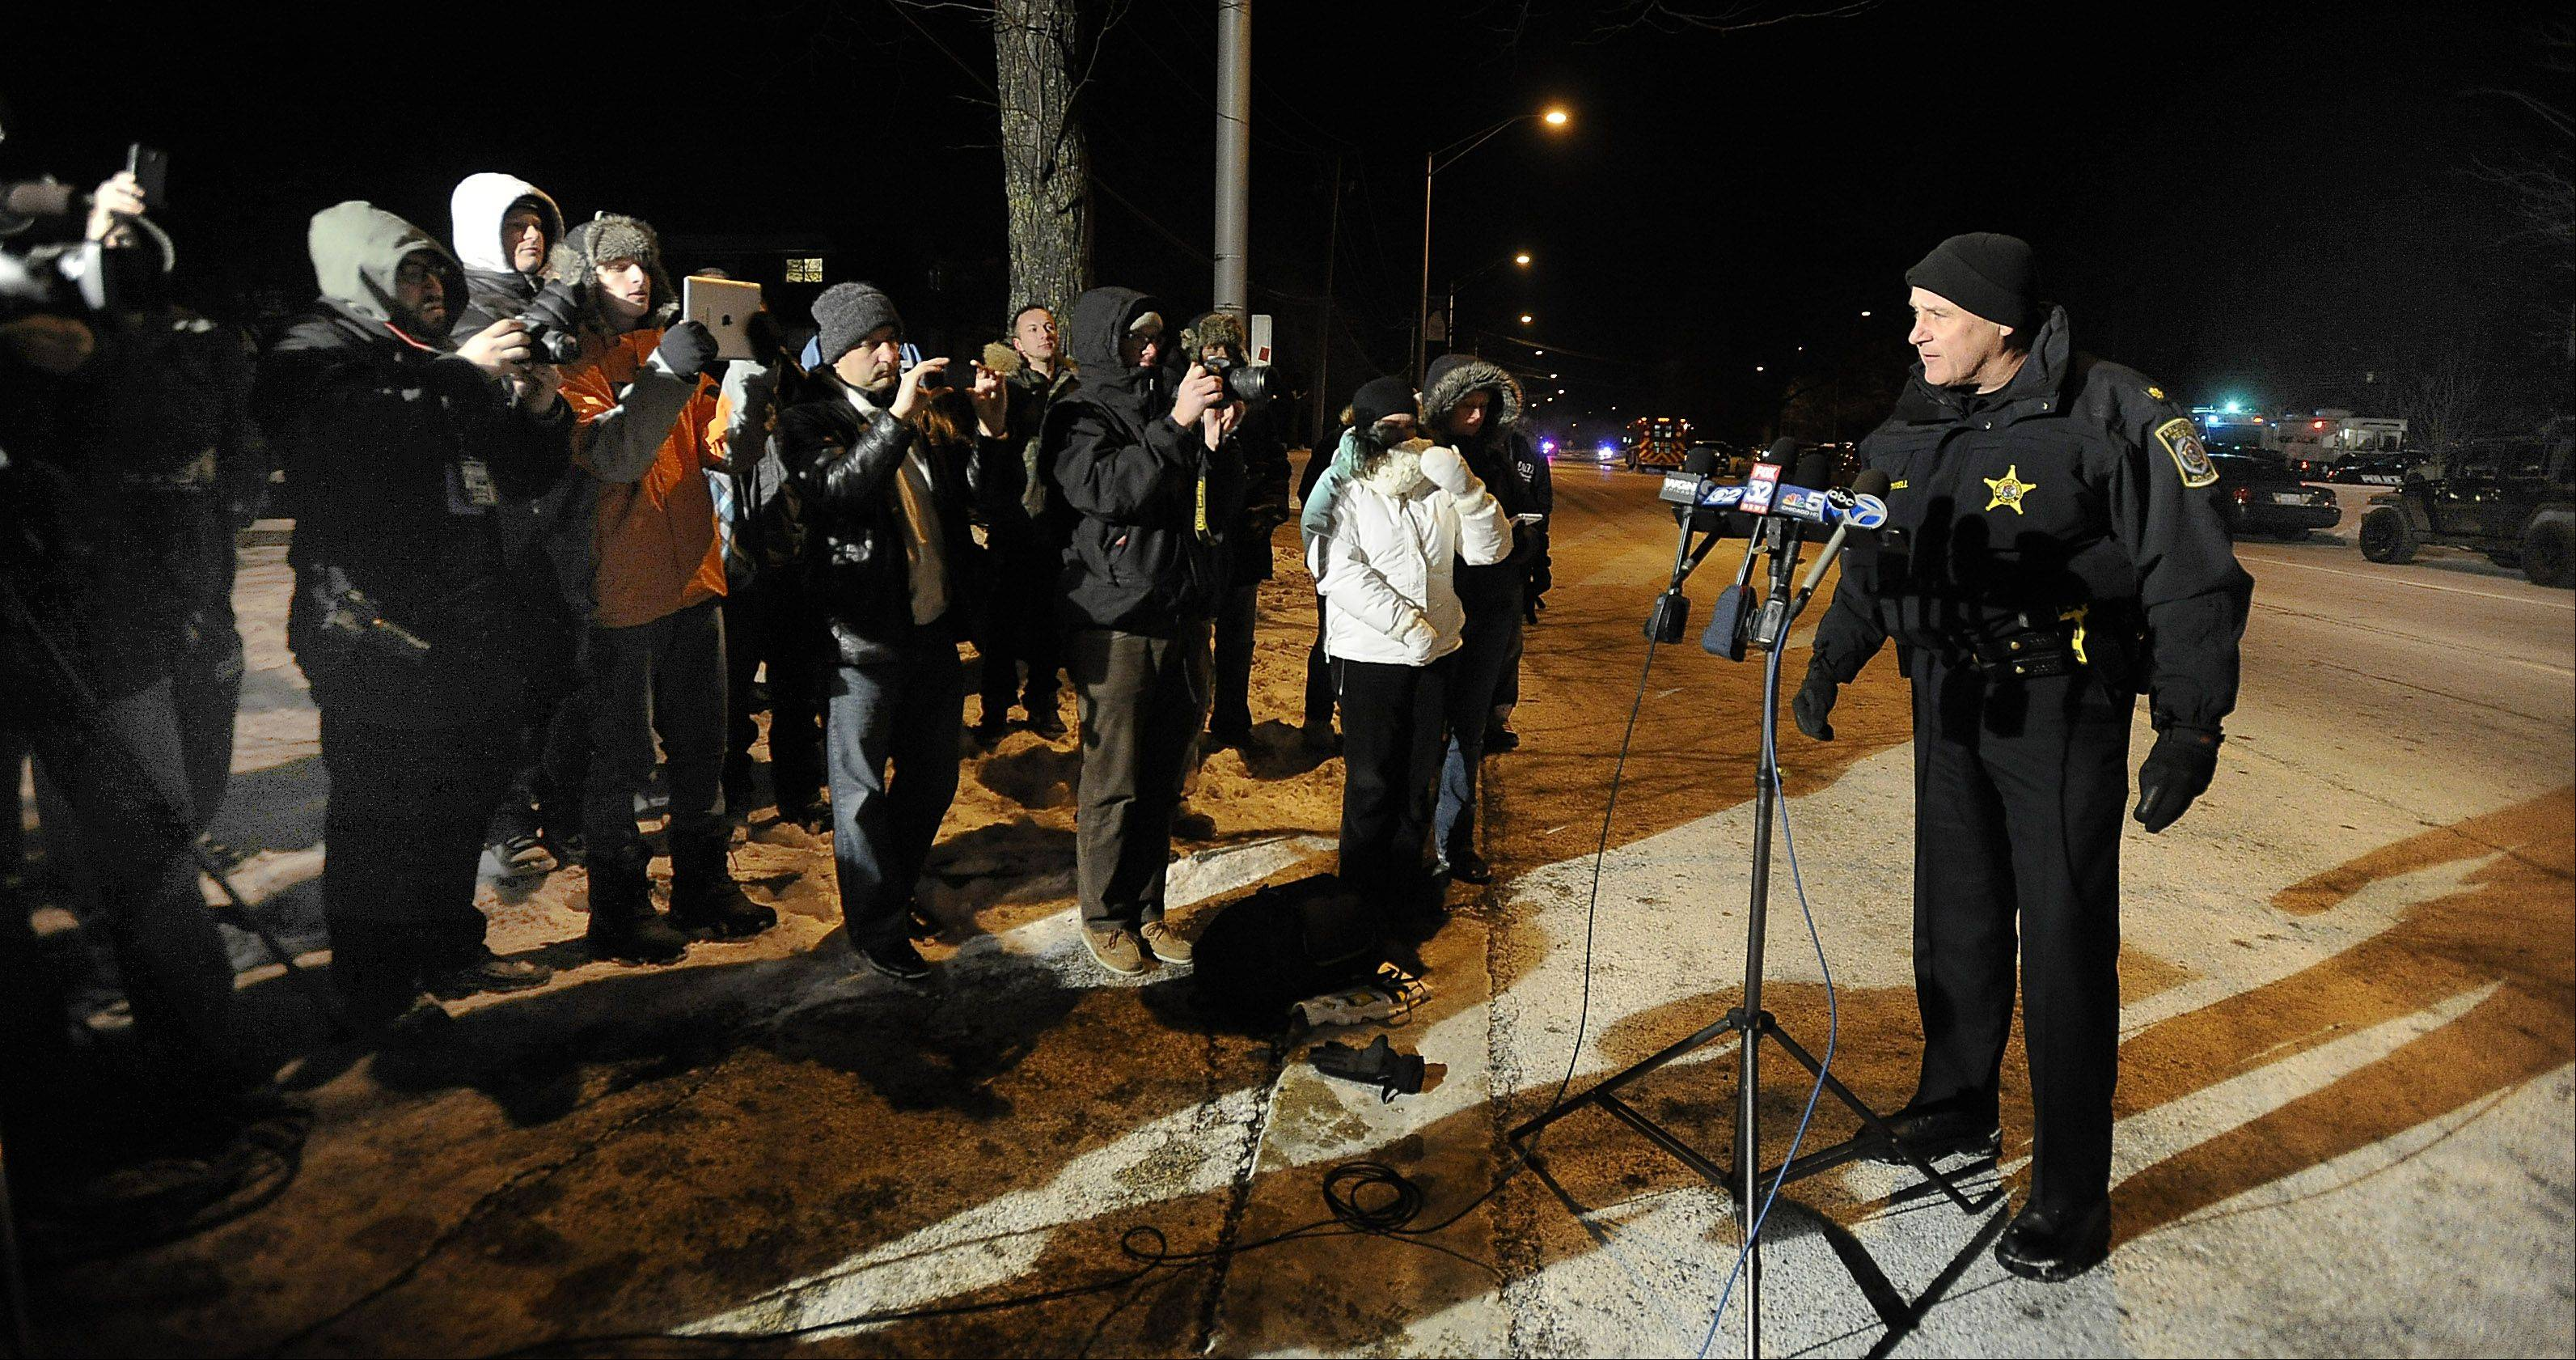 Arlington Heights Police Cmdr. Andrew Whowell addresses the media Thursday night after police resolved a hostage situation.